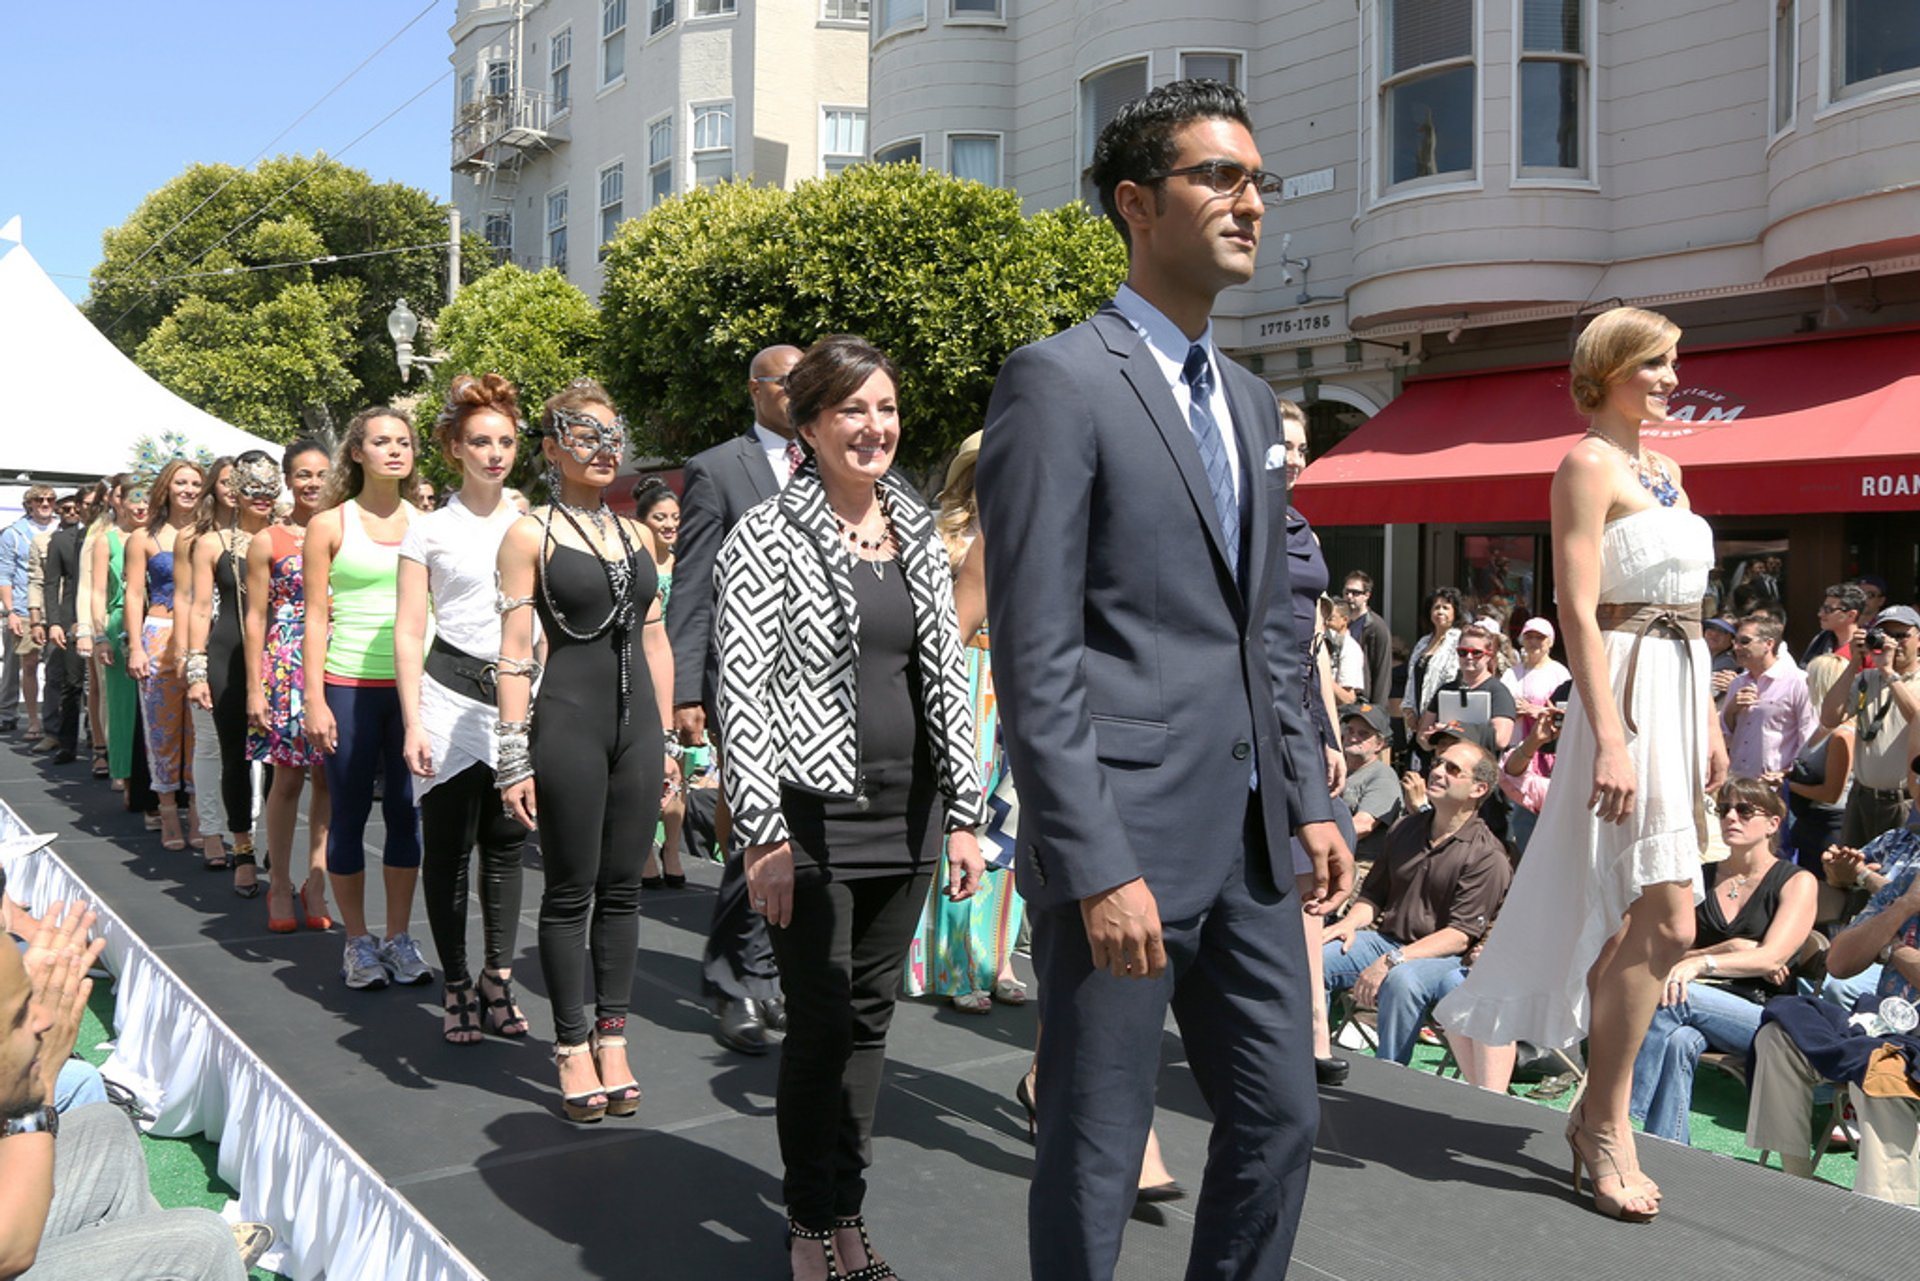 Best time for Union Street Festival in San Francisco 2020